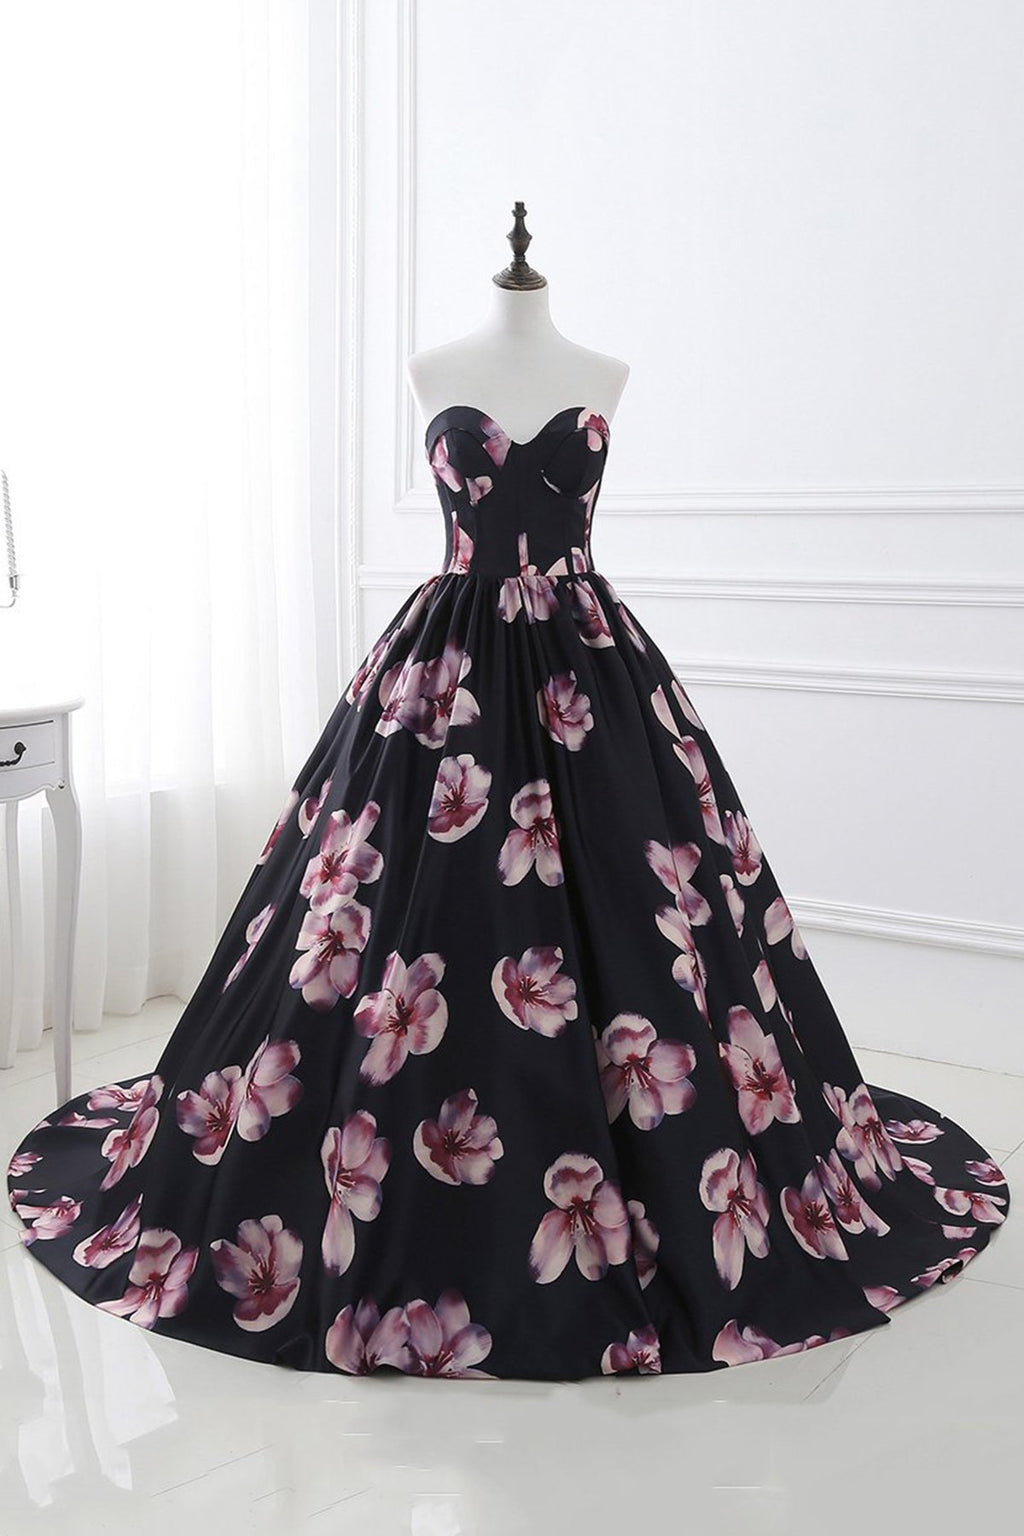 Bandeau Big Print Tutu Wedding Dress Wedding Dress